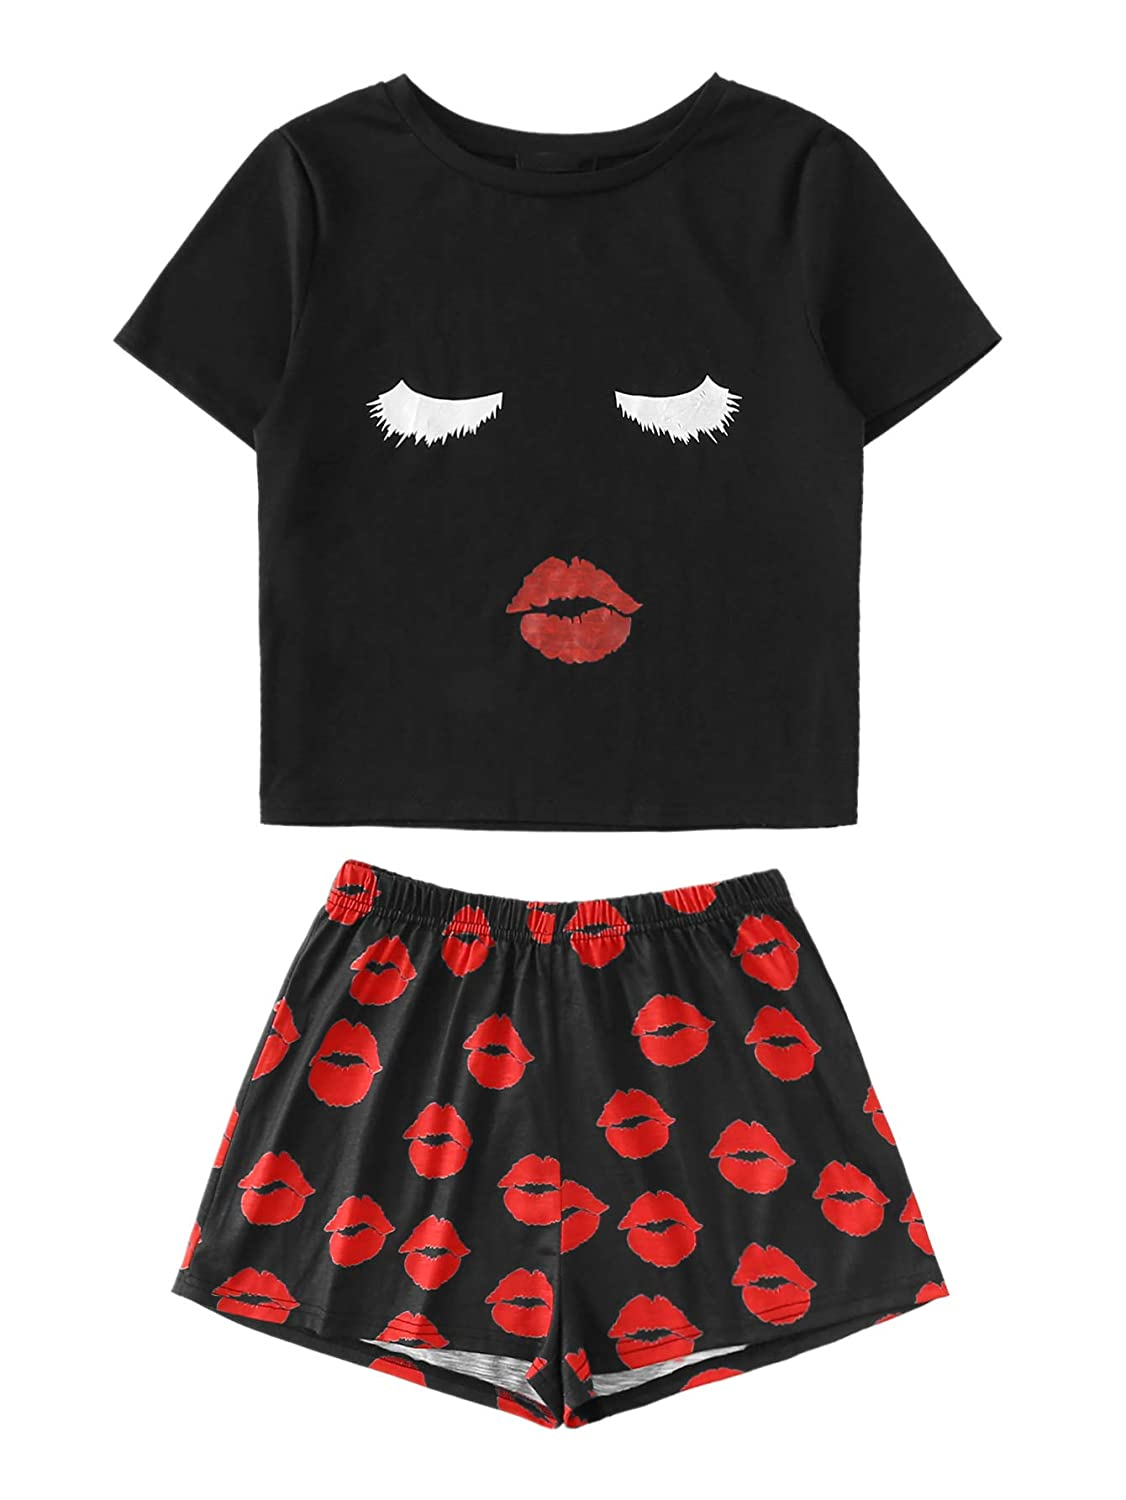 WDIRARA Women's Sleepwear Face Print Top and Red Lip Shorts Pajama Set Black XS